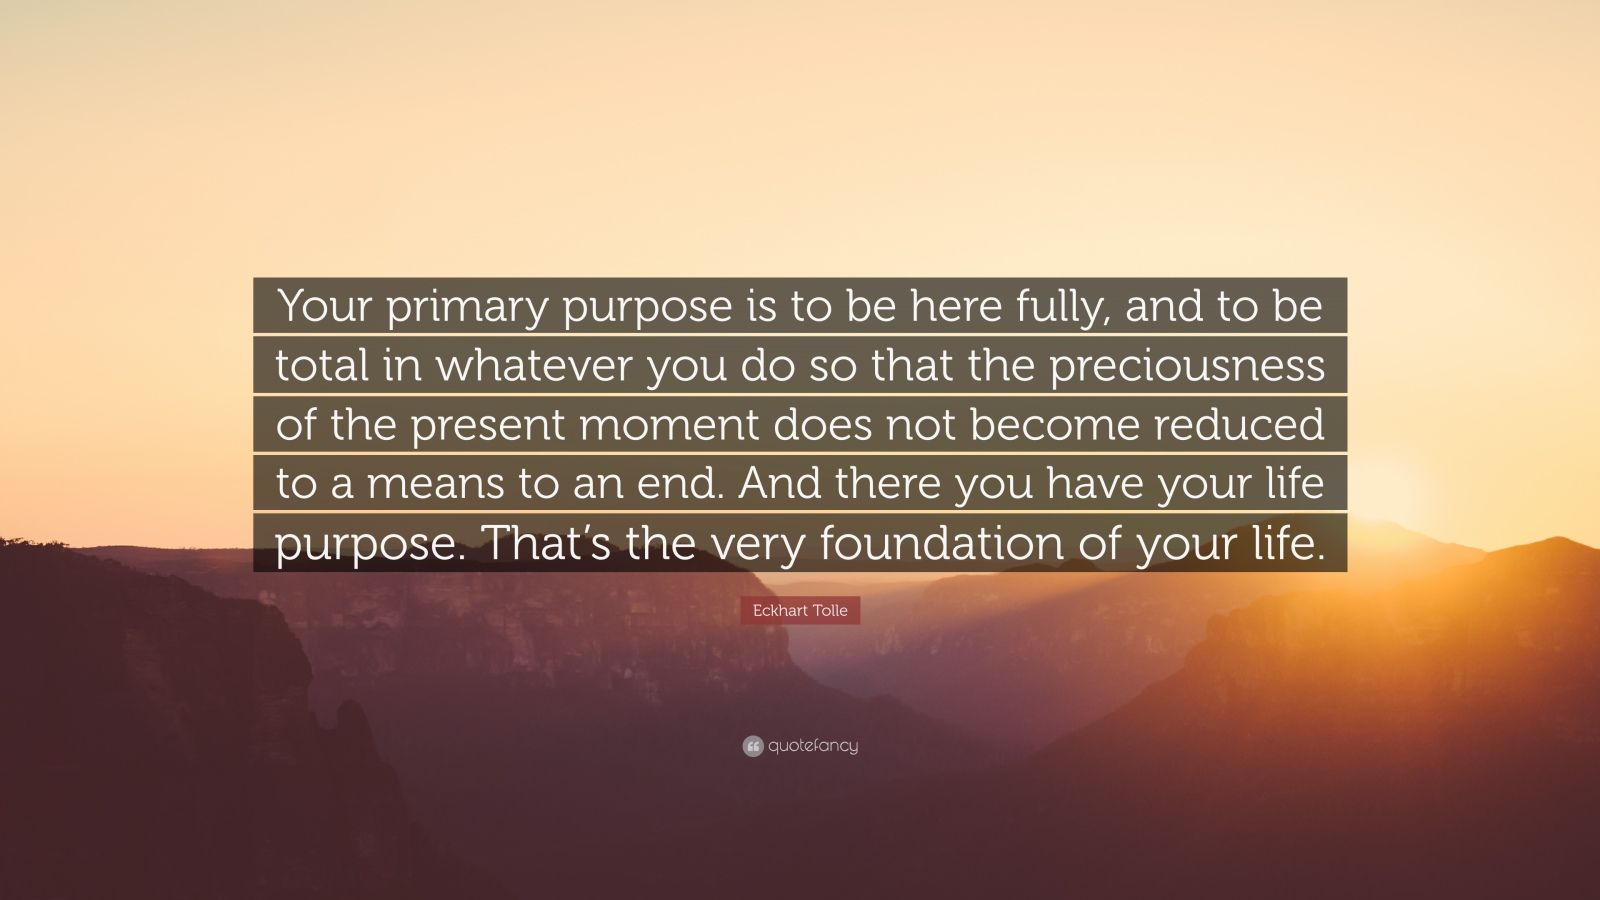 """Eckhart Tolle Quote: """"Your primary purpose is to be here fully, and to be total in whatever you do so that the preciousness of the present moment does not become reduced to a means to an end. And there you have your life purpose. That's the very foundation of your life."""""""